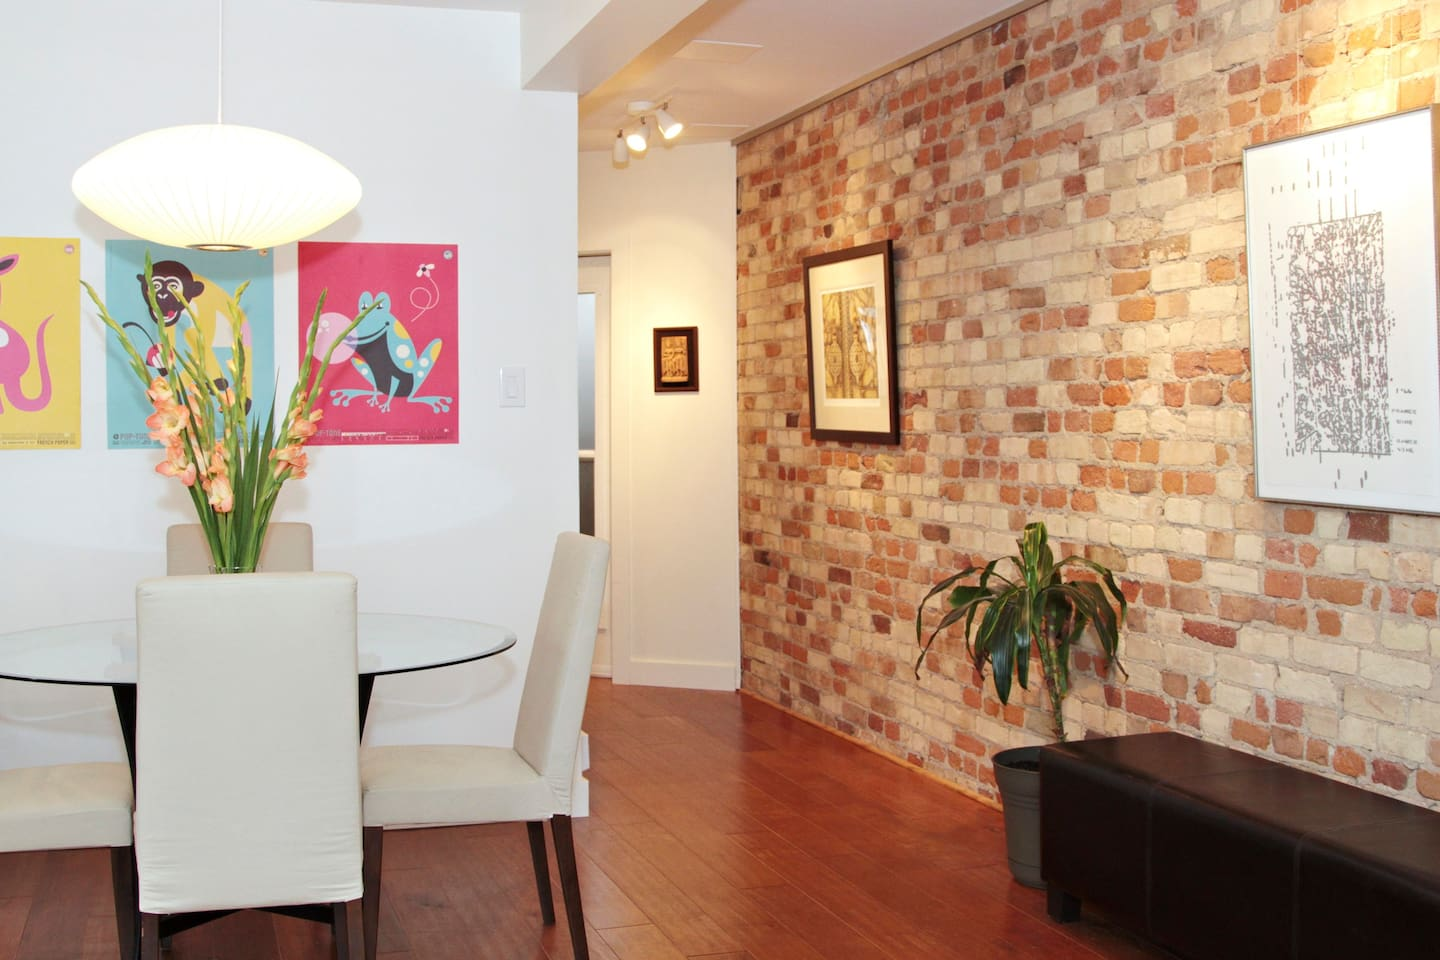 Dining room and brick wall of art